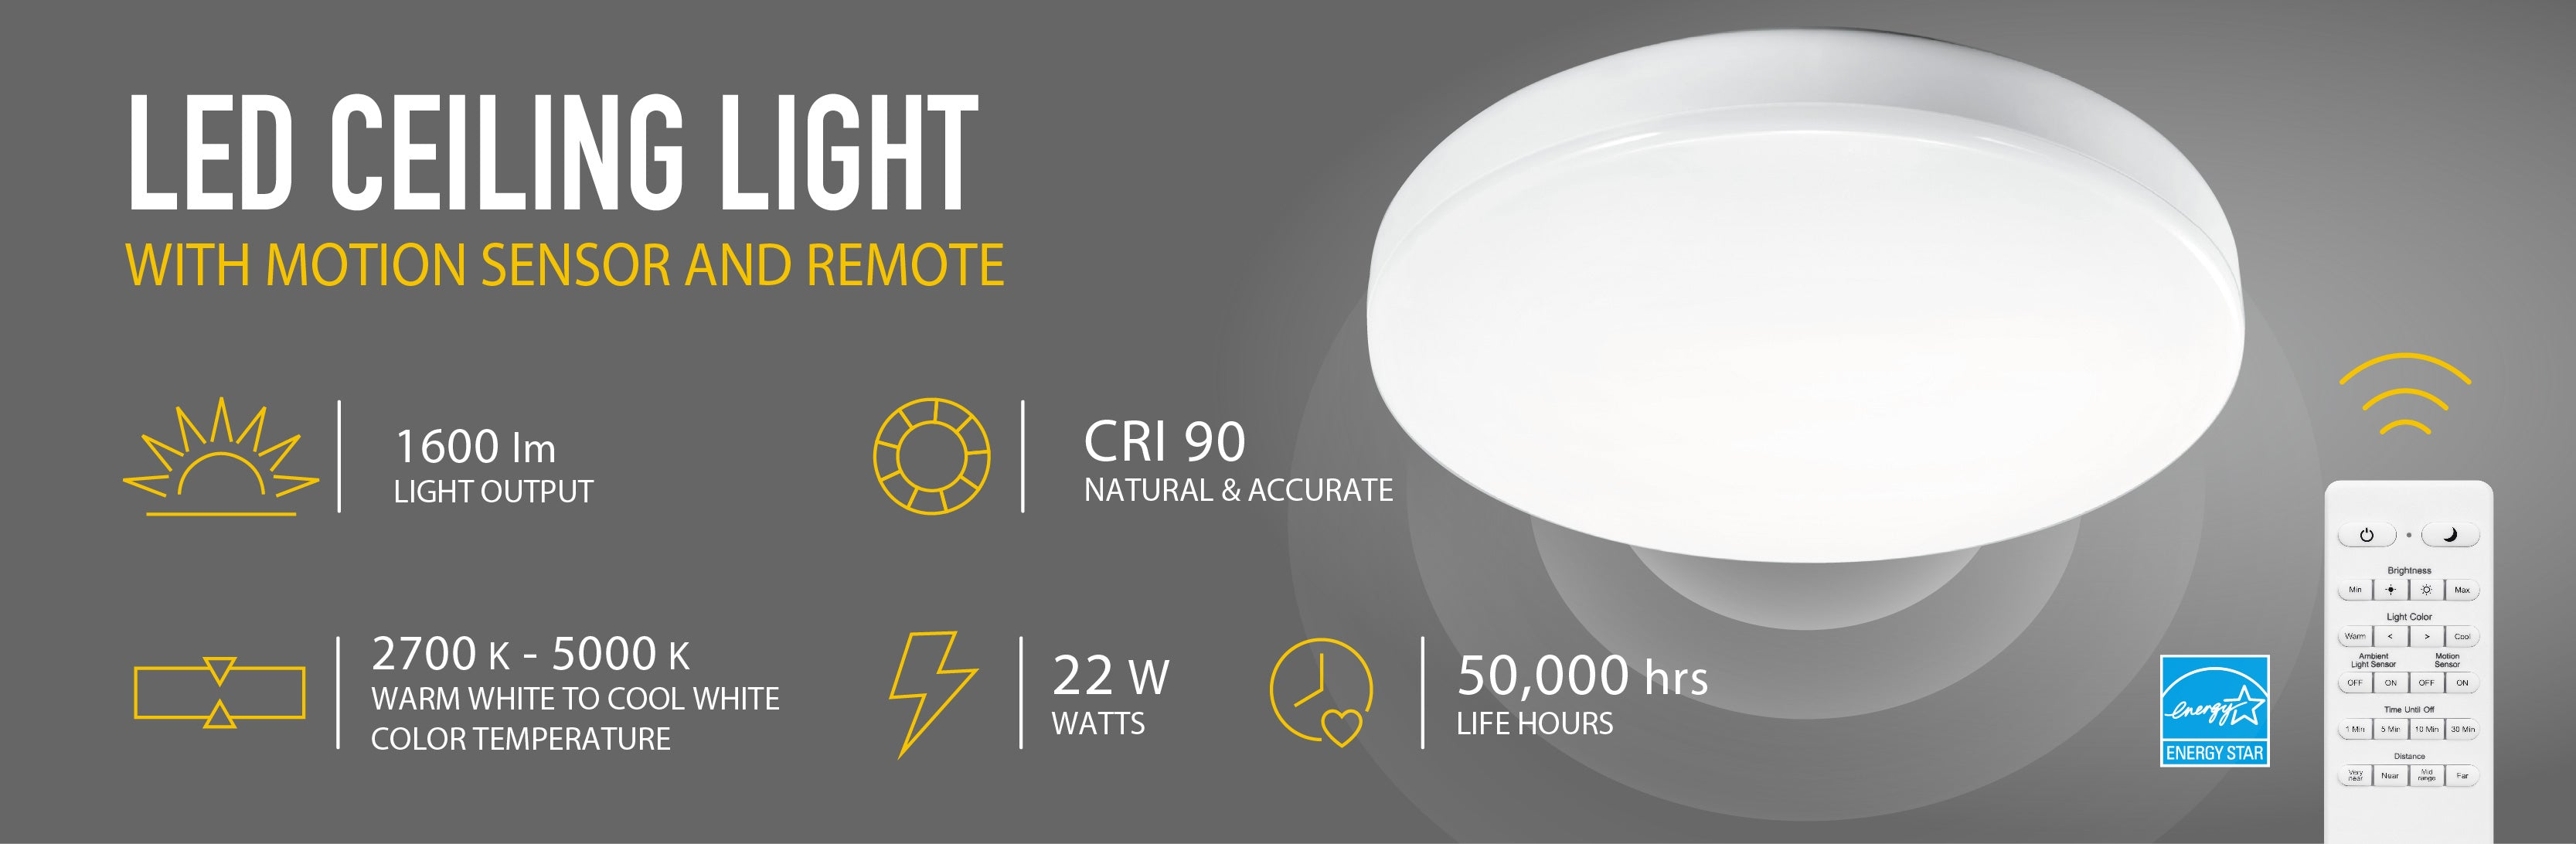 Led Ceiling Light With Motion Sensor And Remote Koda